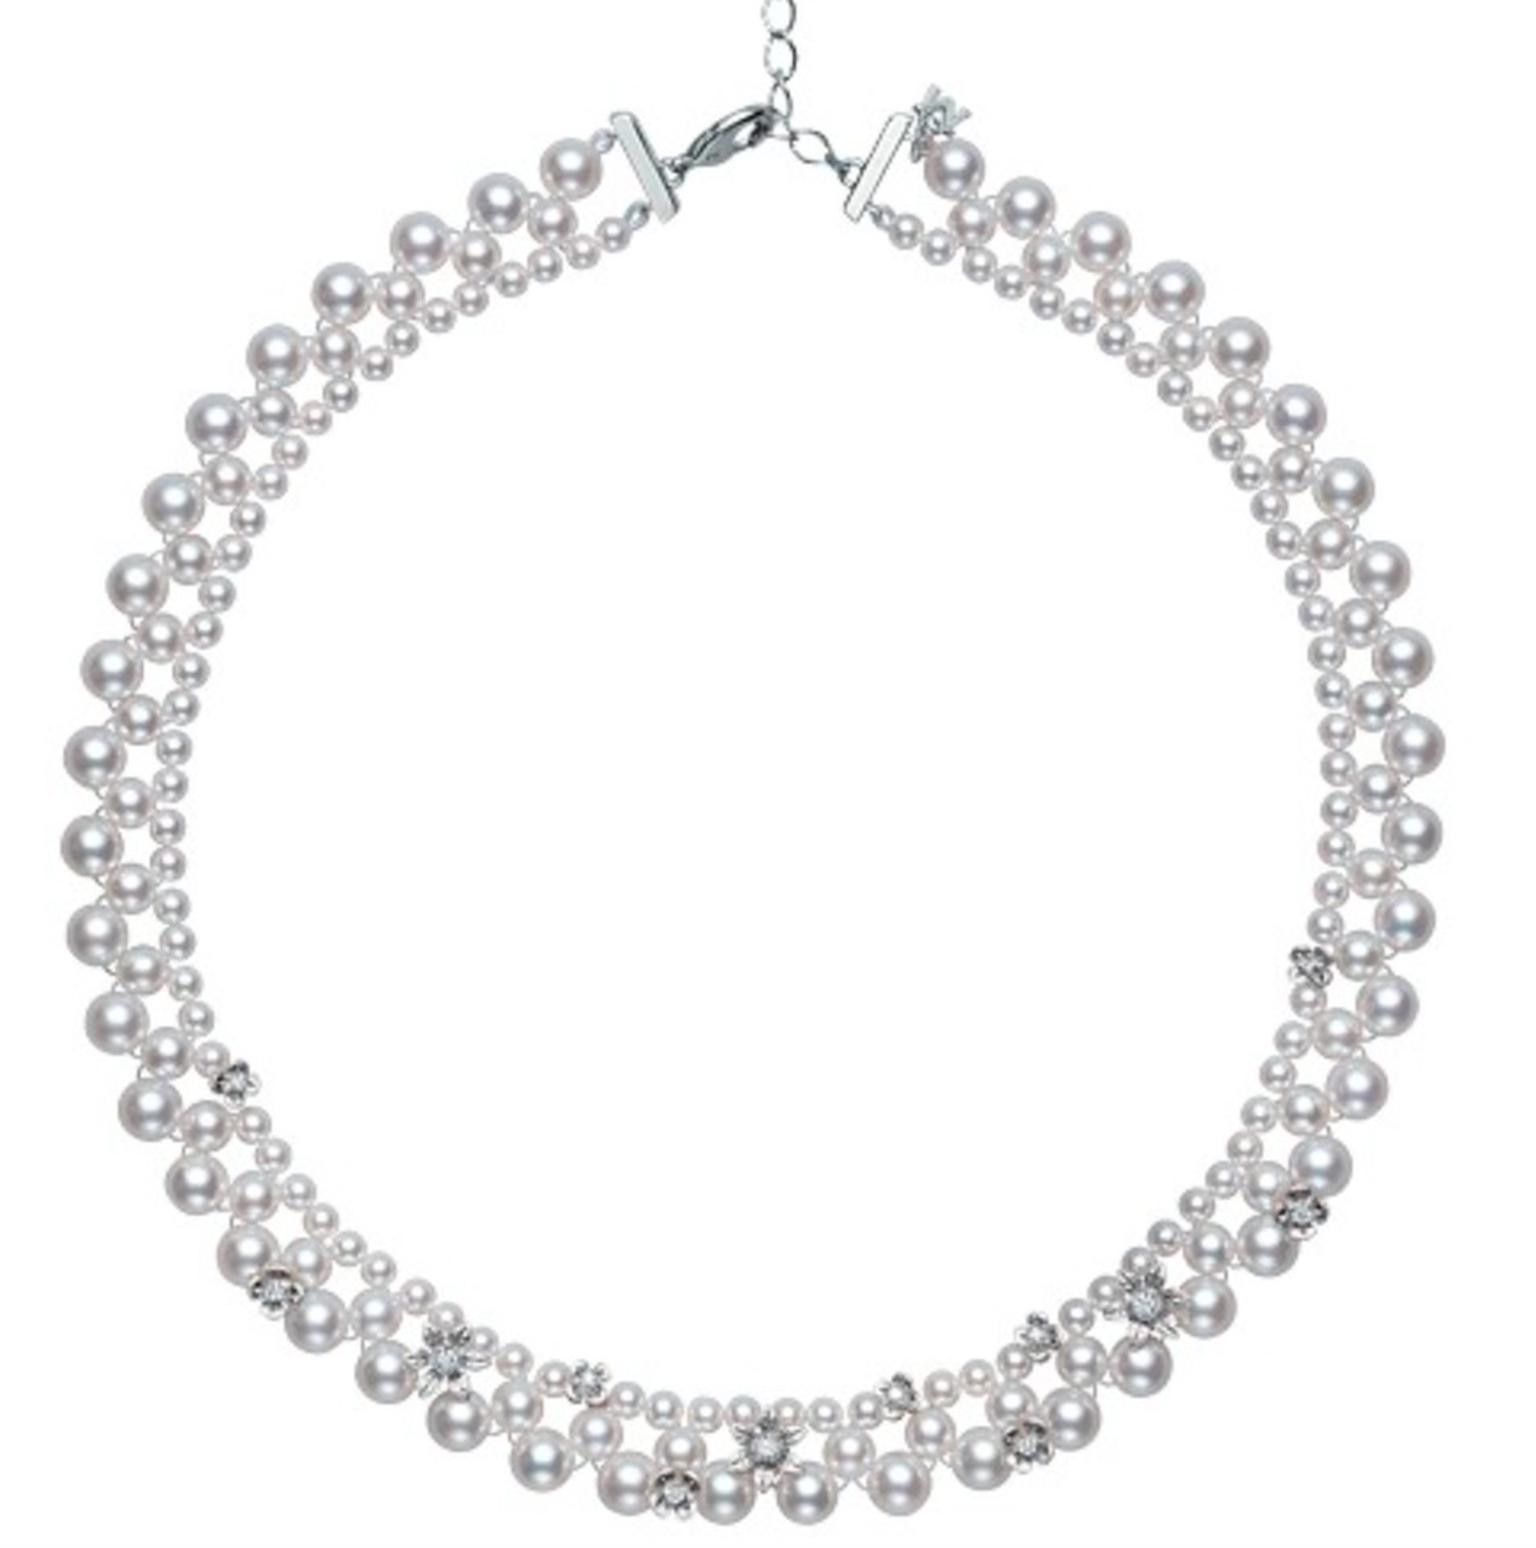 Mikimoto Flower Lace necklace